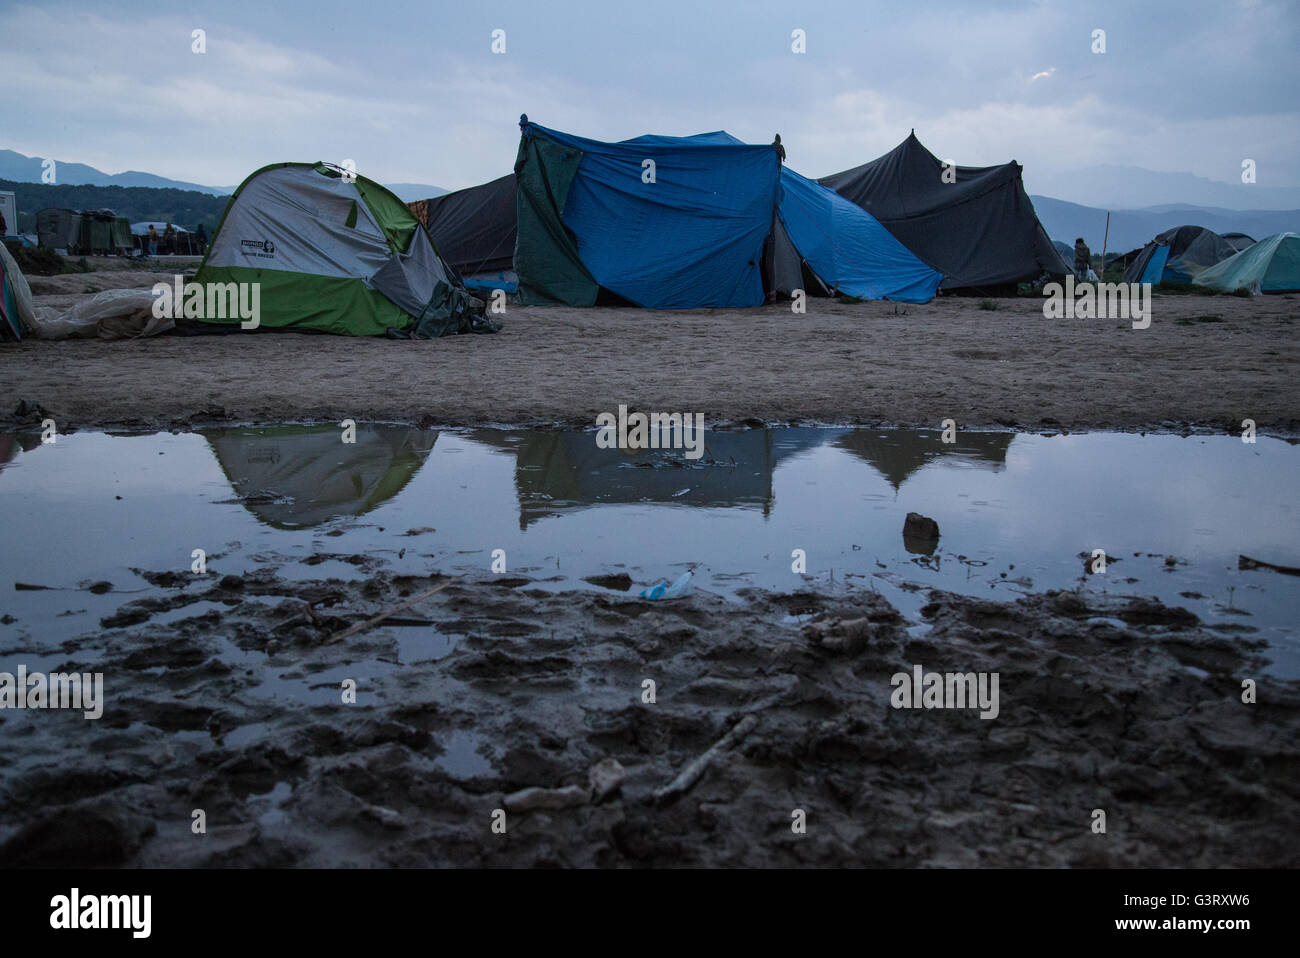 Reflections of the tents in the Syrian refugee camp of Idomeni (Eidomeni) at the Greek - Macedonian border. - Stock Image